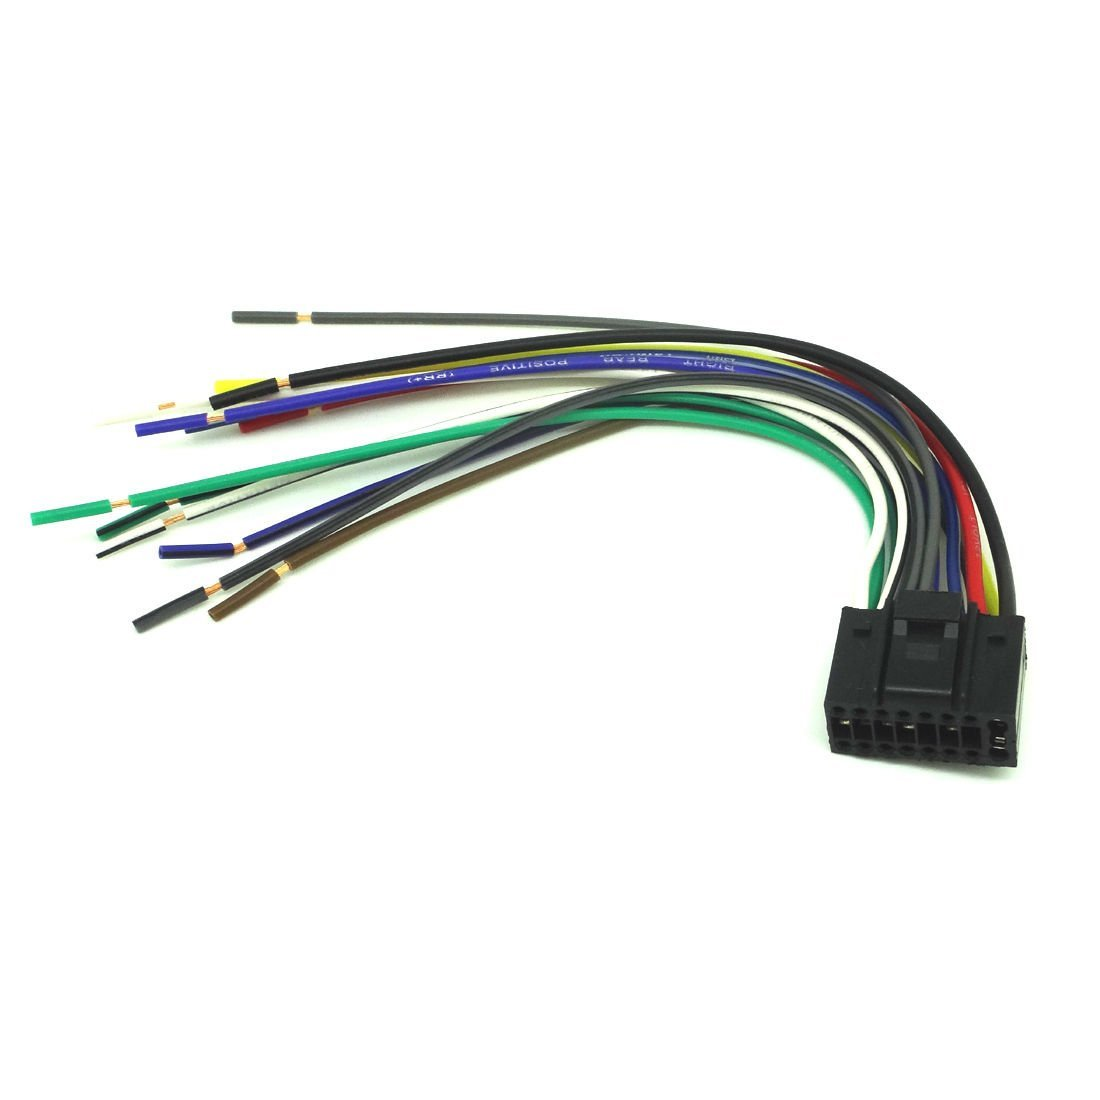 Buy Universal 16pin Radio Wire Harness Car Audio Stereo Power Plug Sony Mex N5100bt Wiring Conpus 16 Pin For Kenwood Kdc Mp242 Player